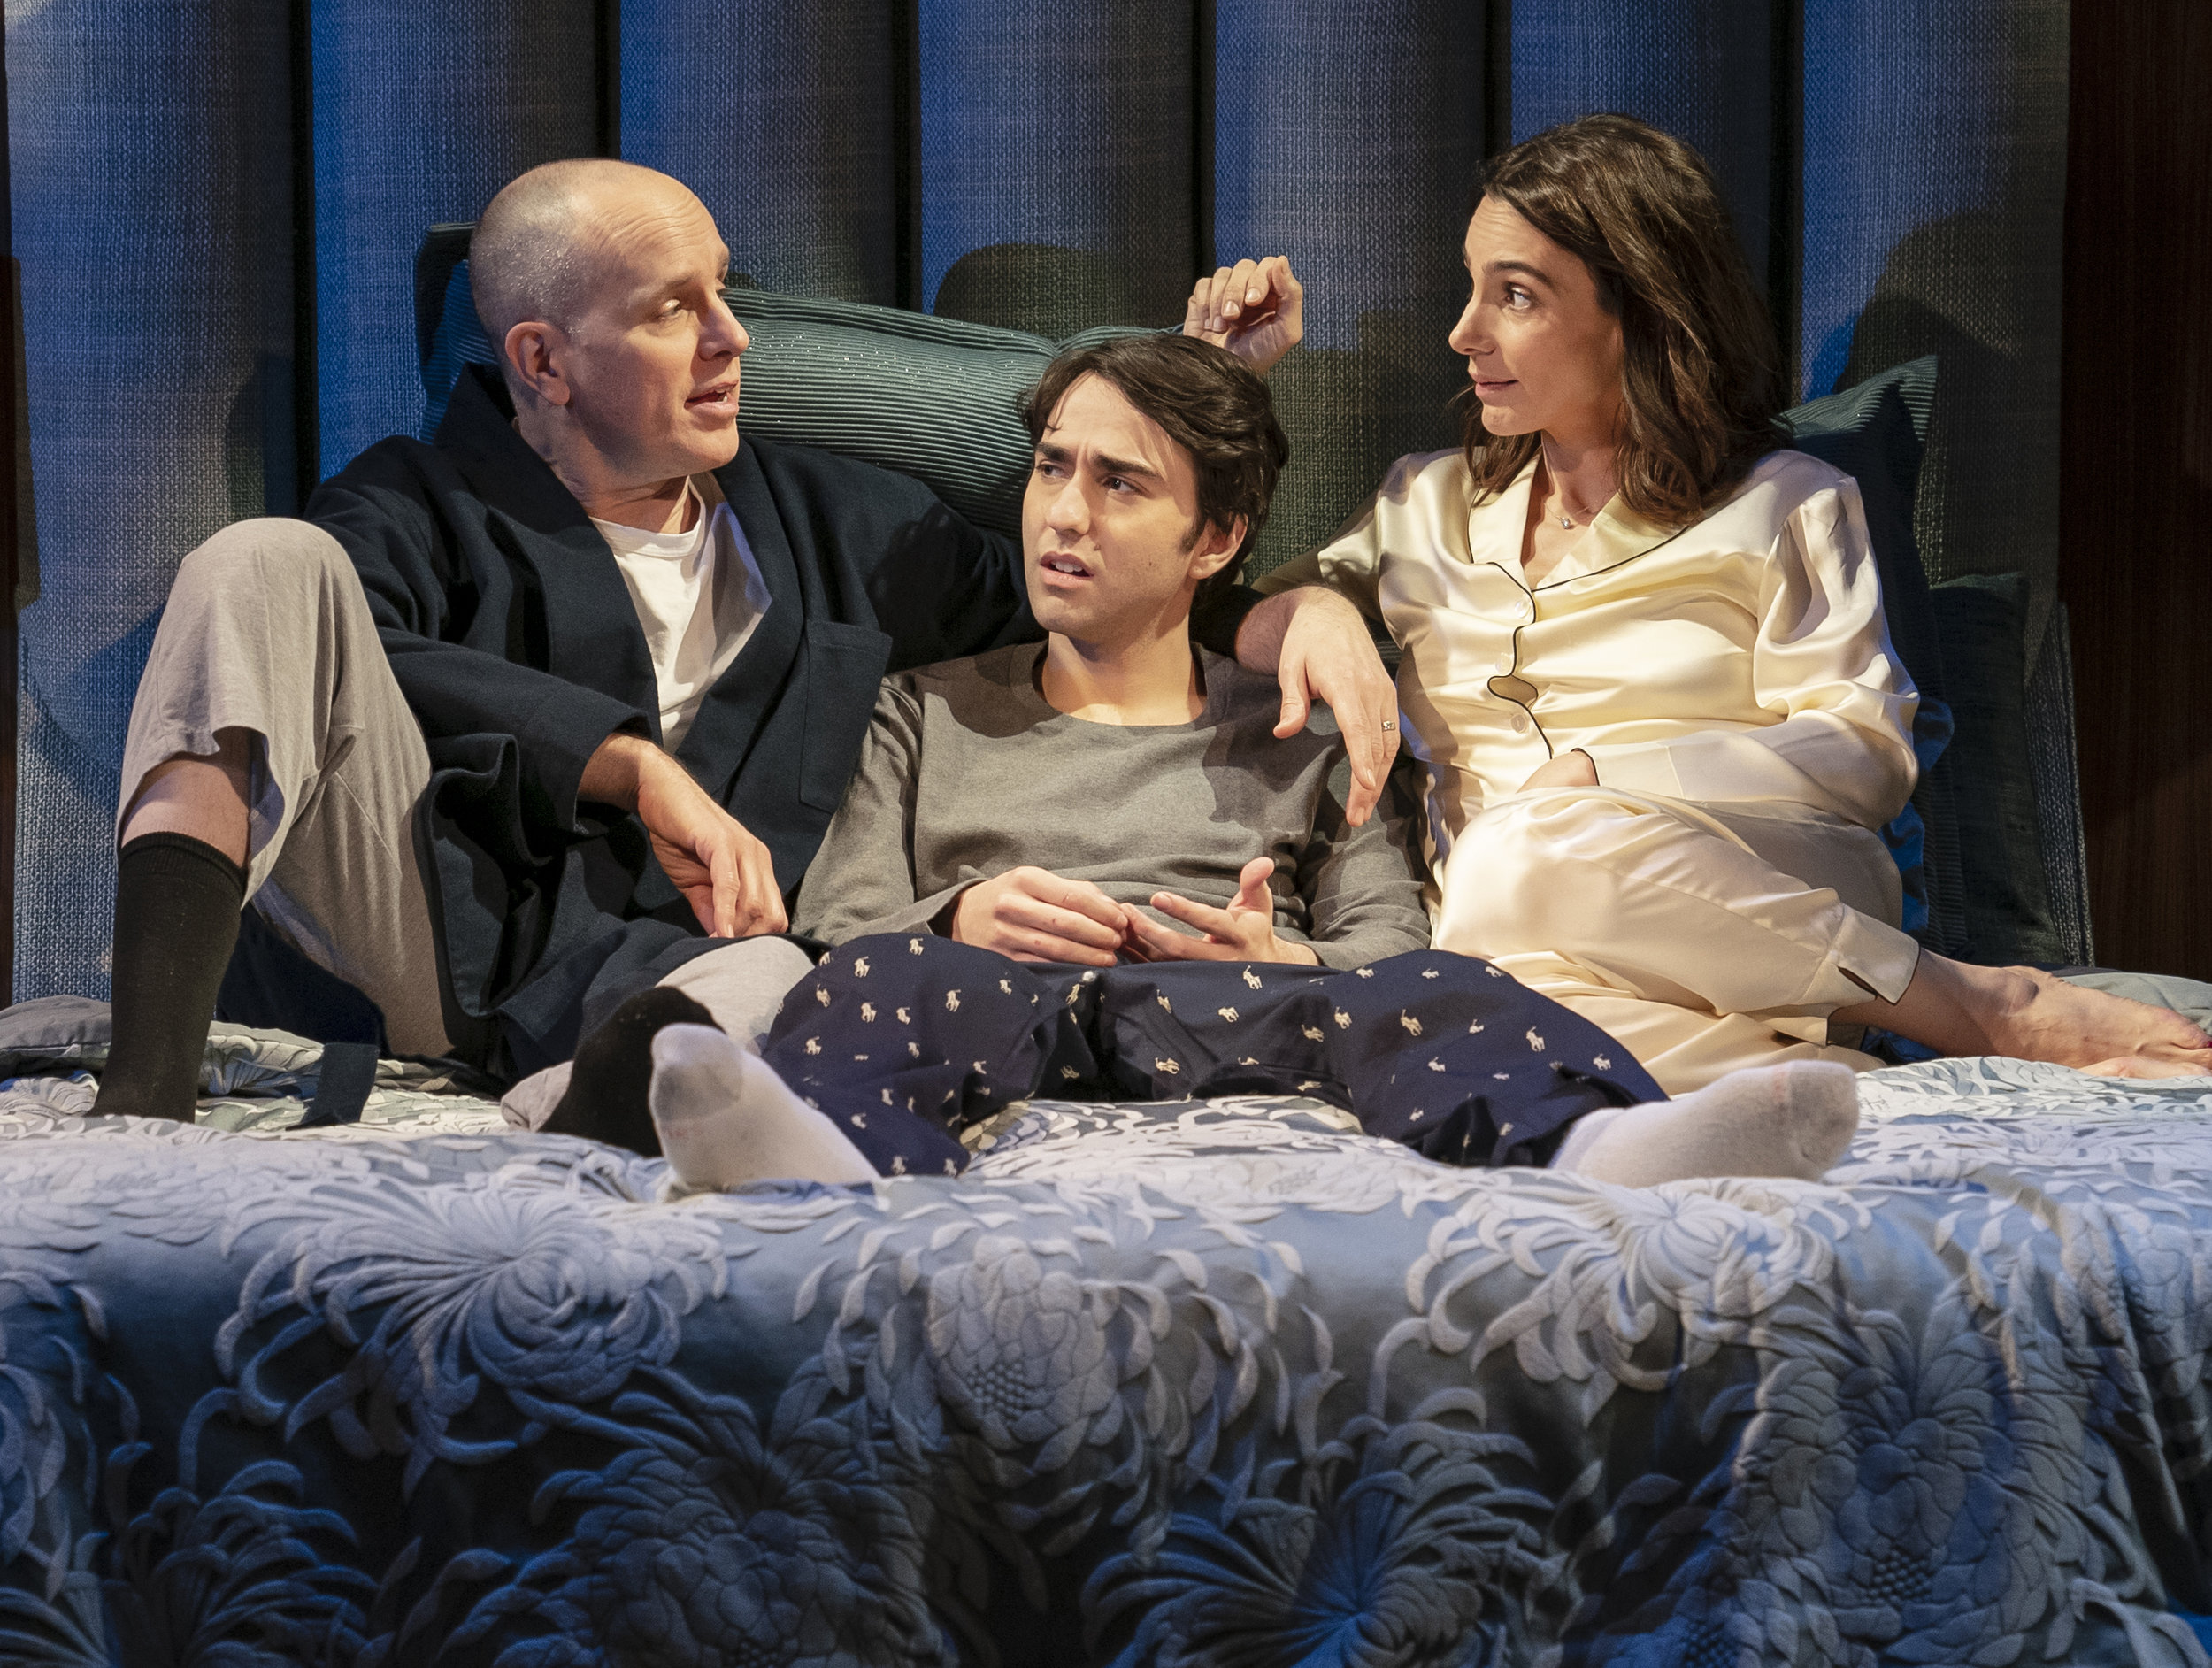 AuCoin, Wolff, and Parisse play a family facing a crisis. Photographs by Joan Marcus.